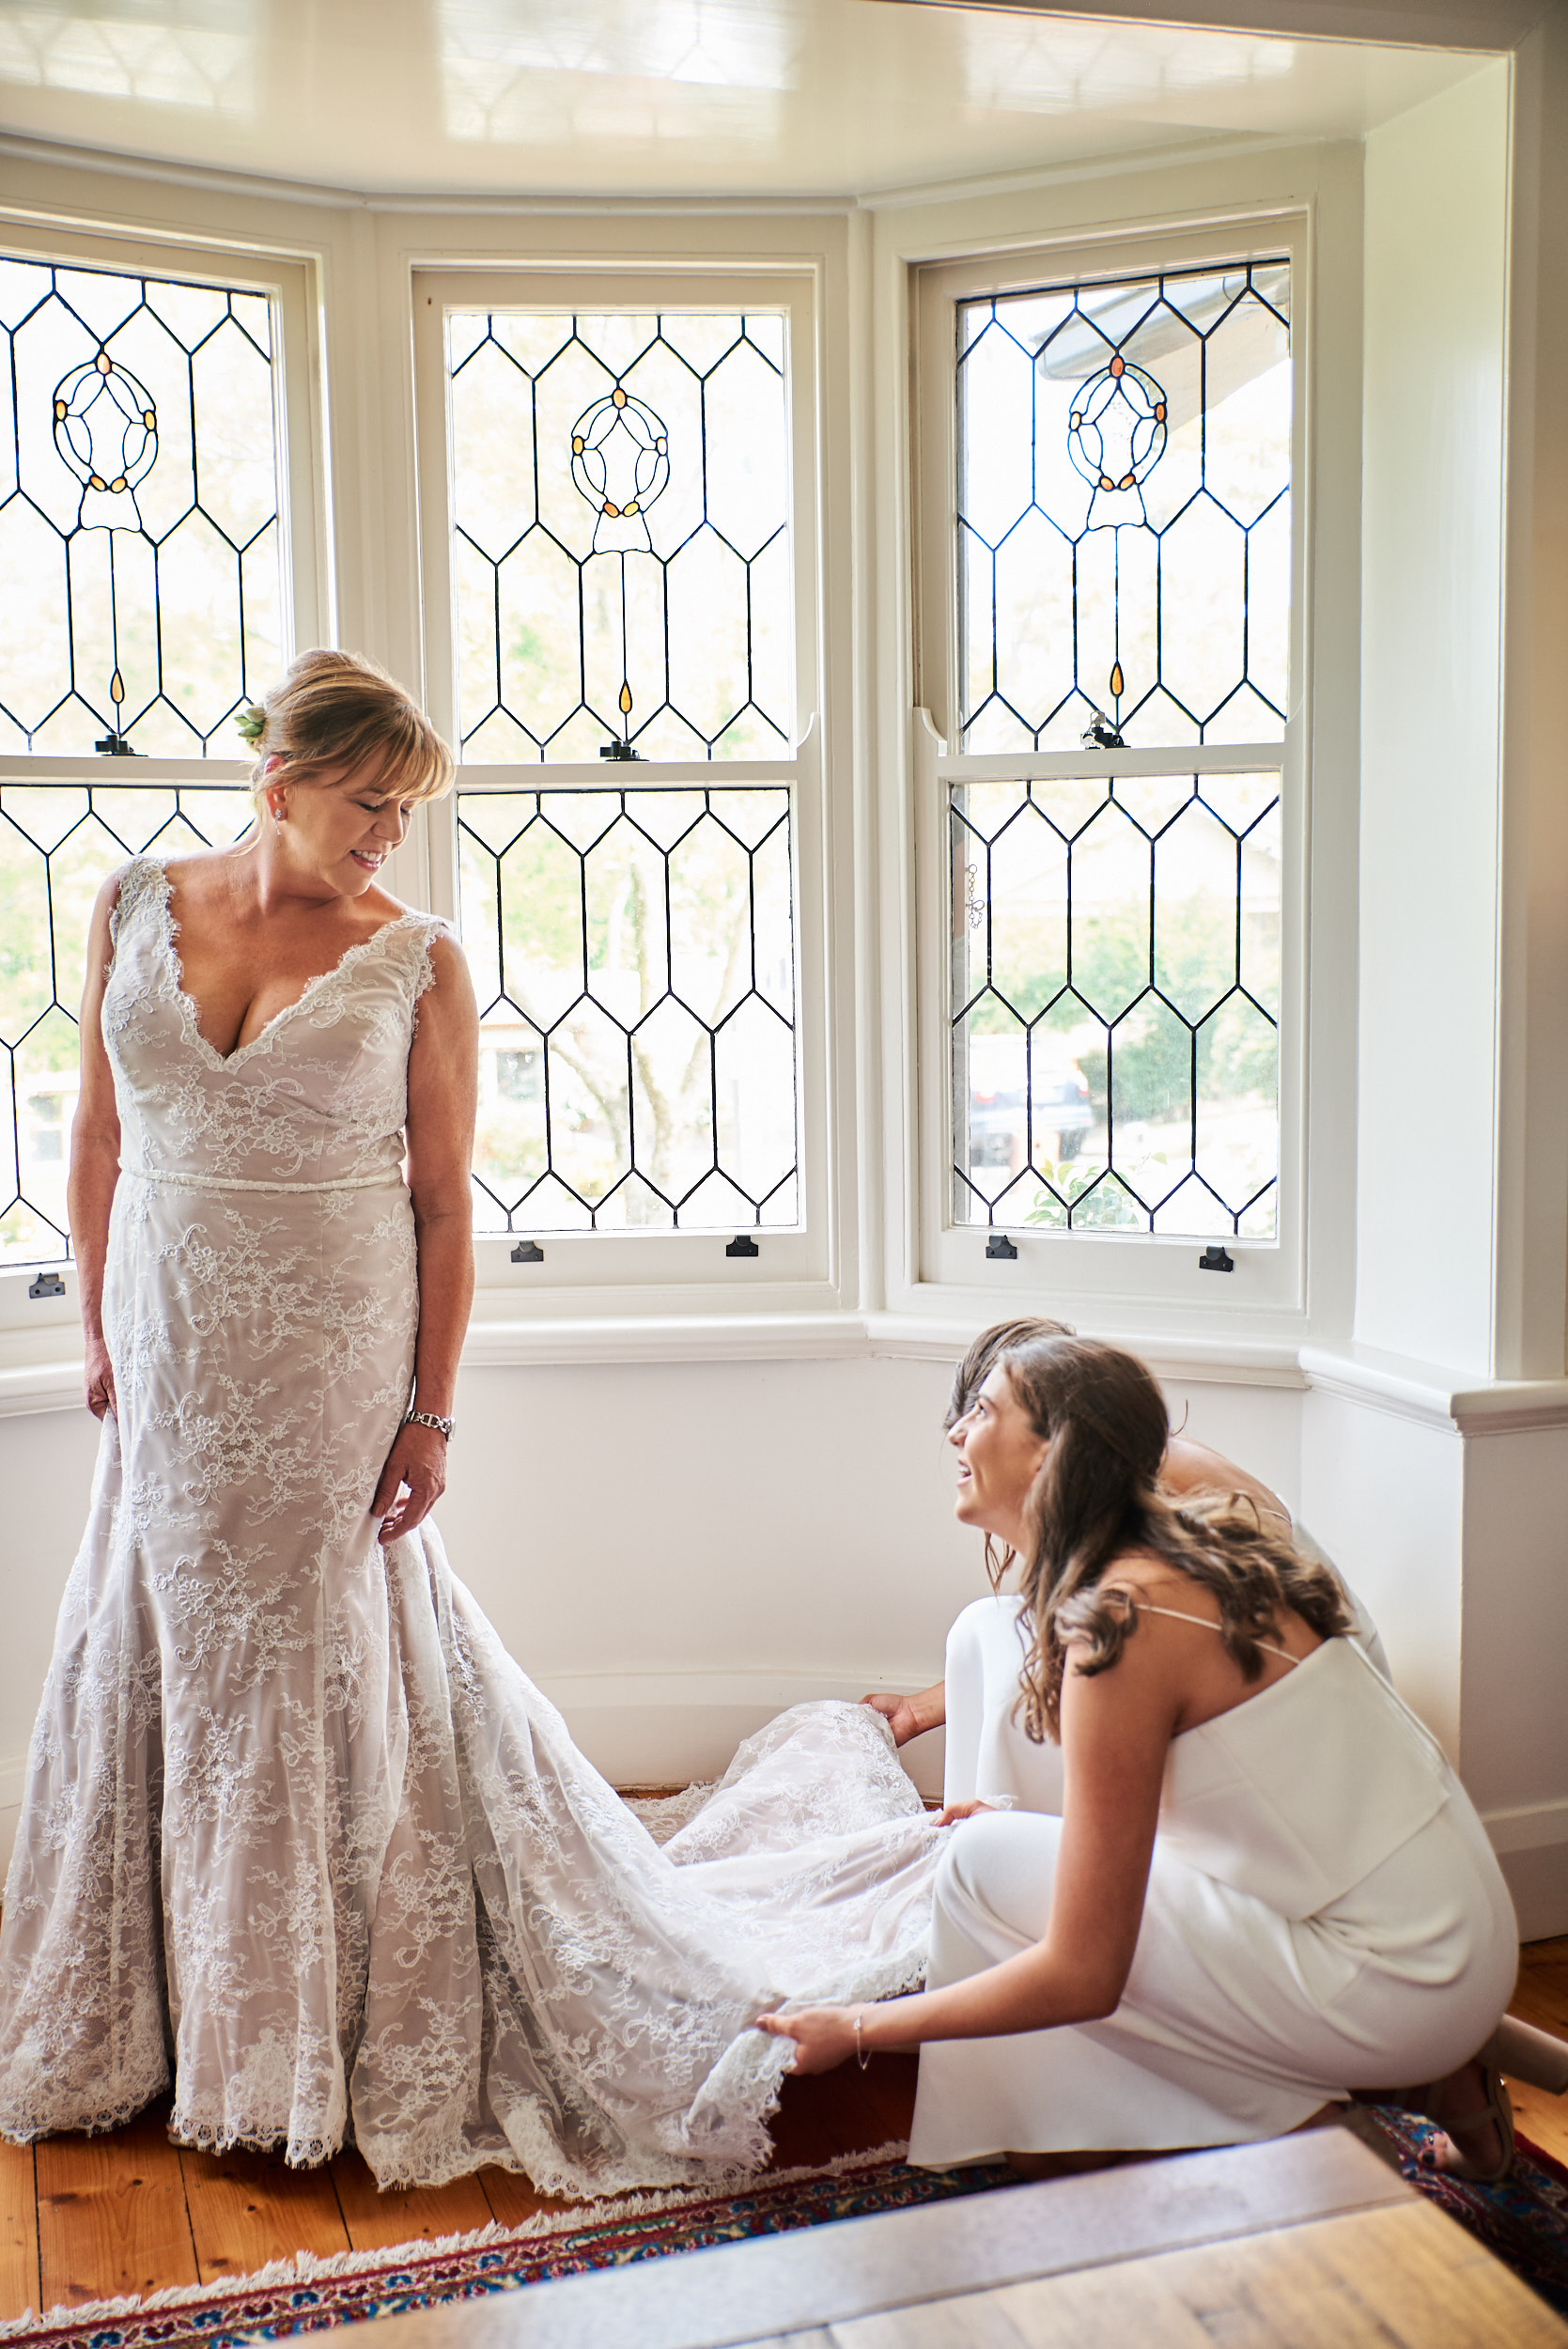 Bride and bridesmaids adjusting dress non-hipster wedding.jpg